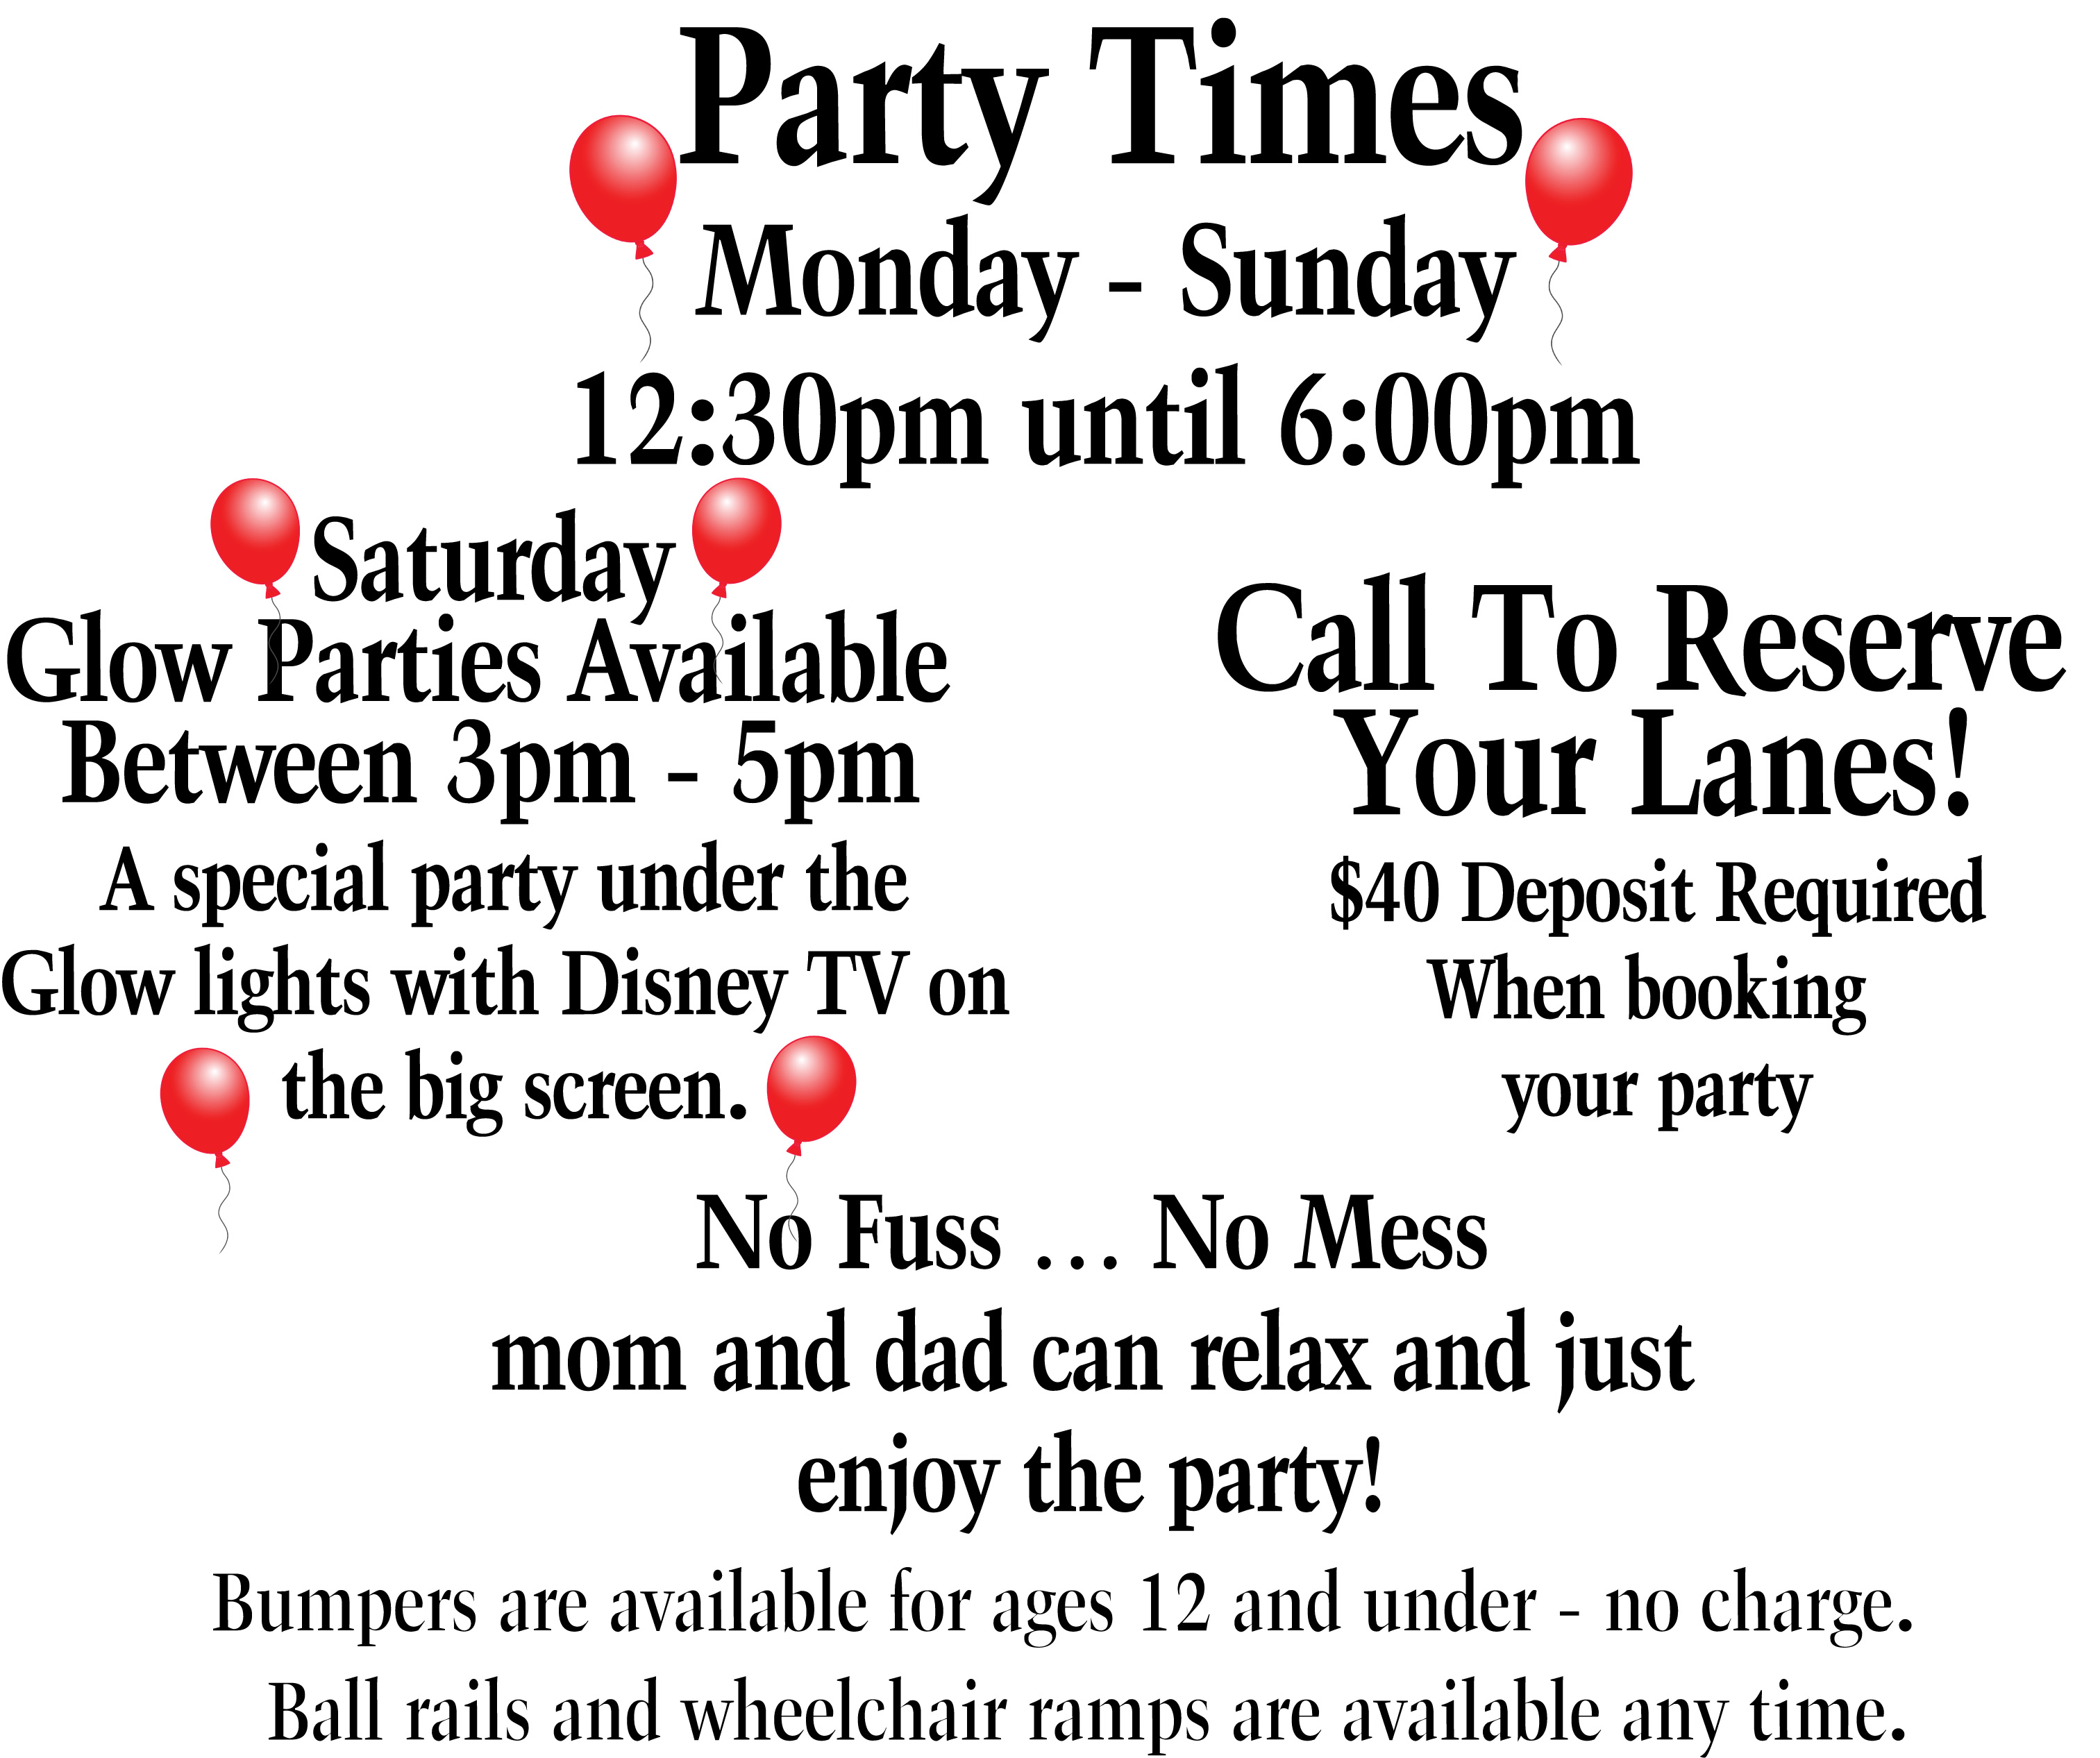 3 Party Times